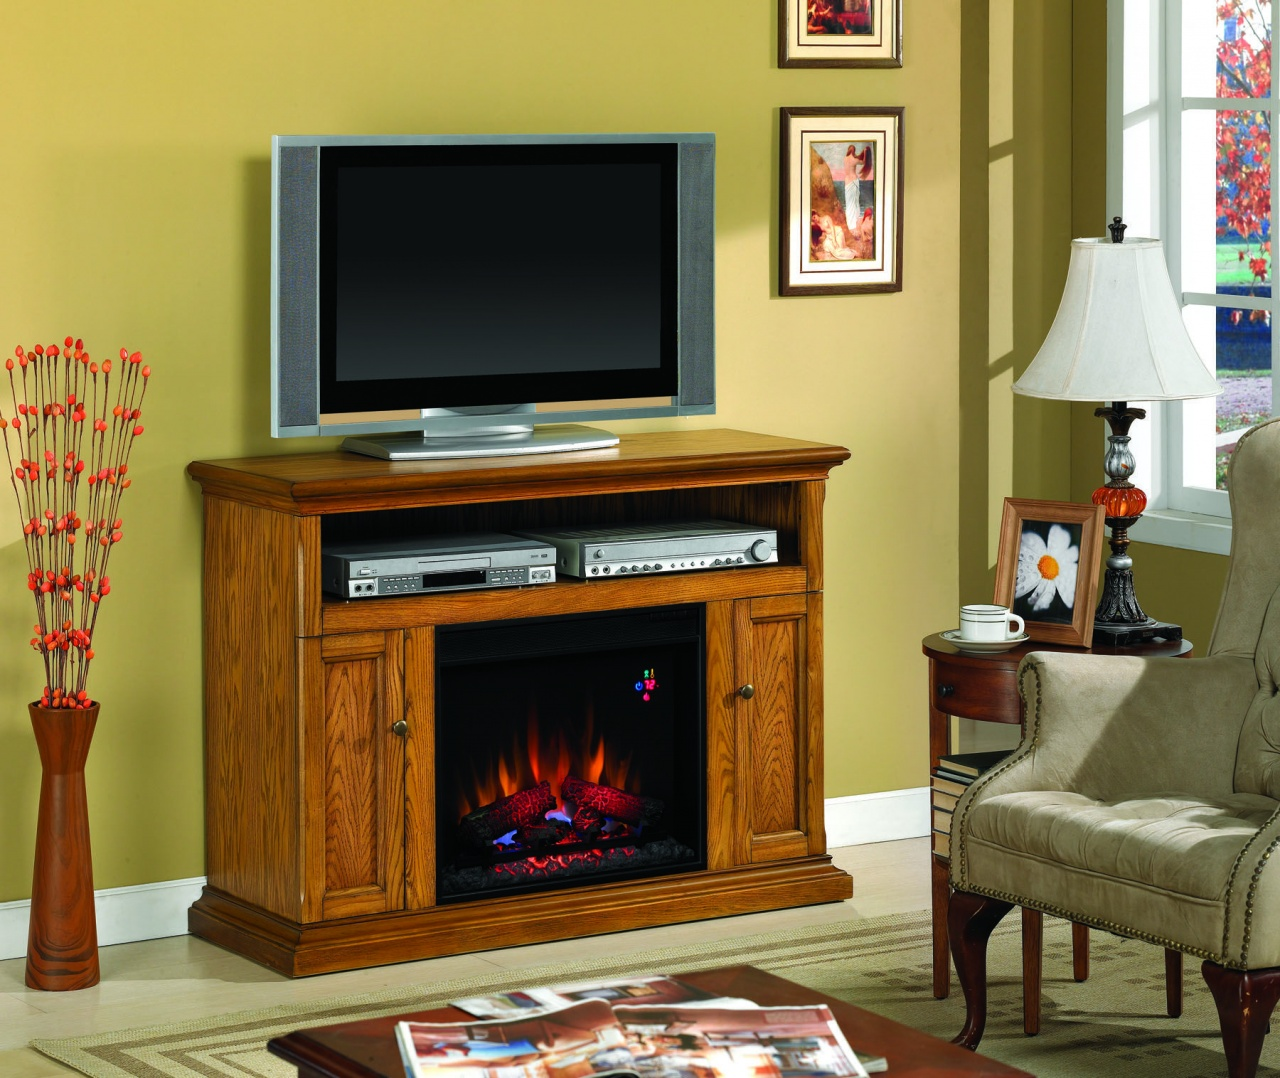 lowes infrared fireplace 42 best rustic fireplace images from lowes infrared fireplace 4